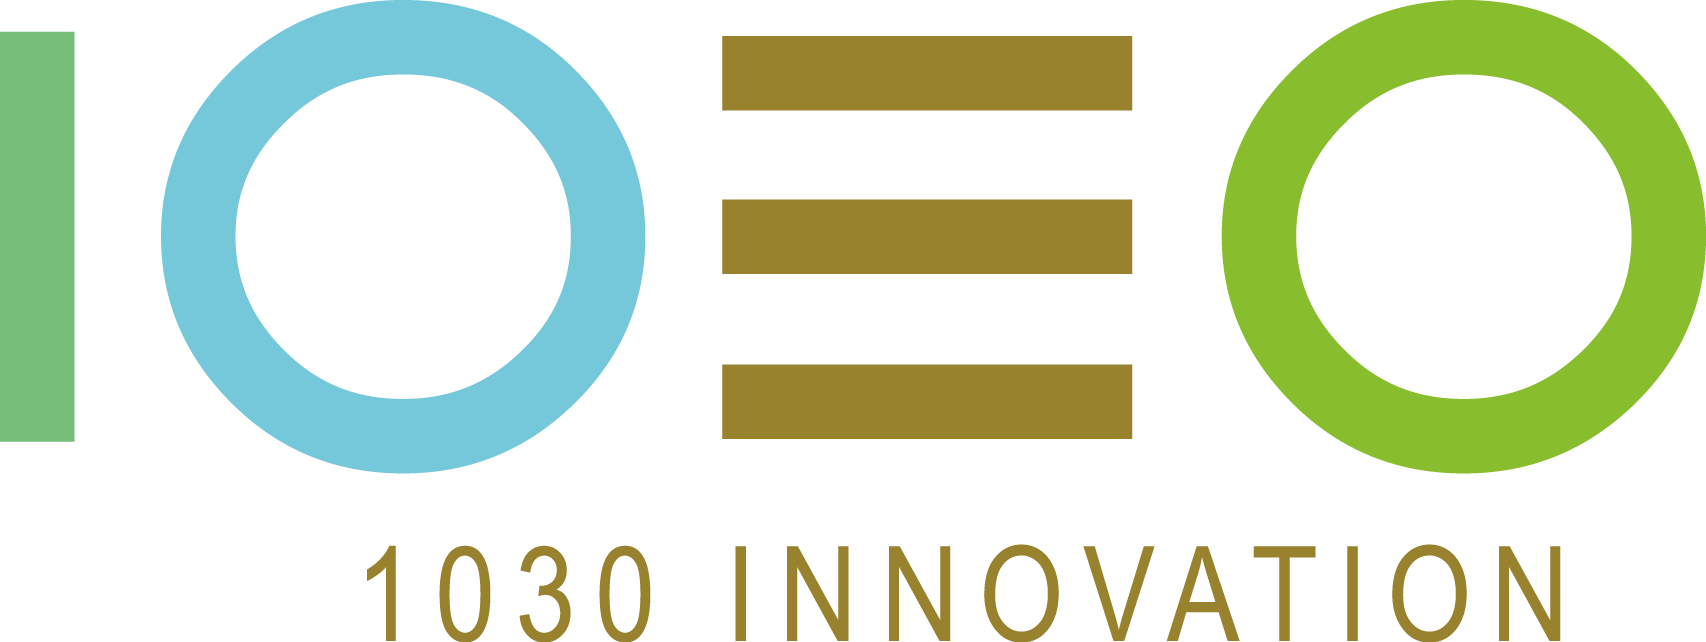 1030 Innovation Consulting